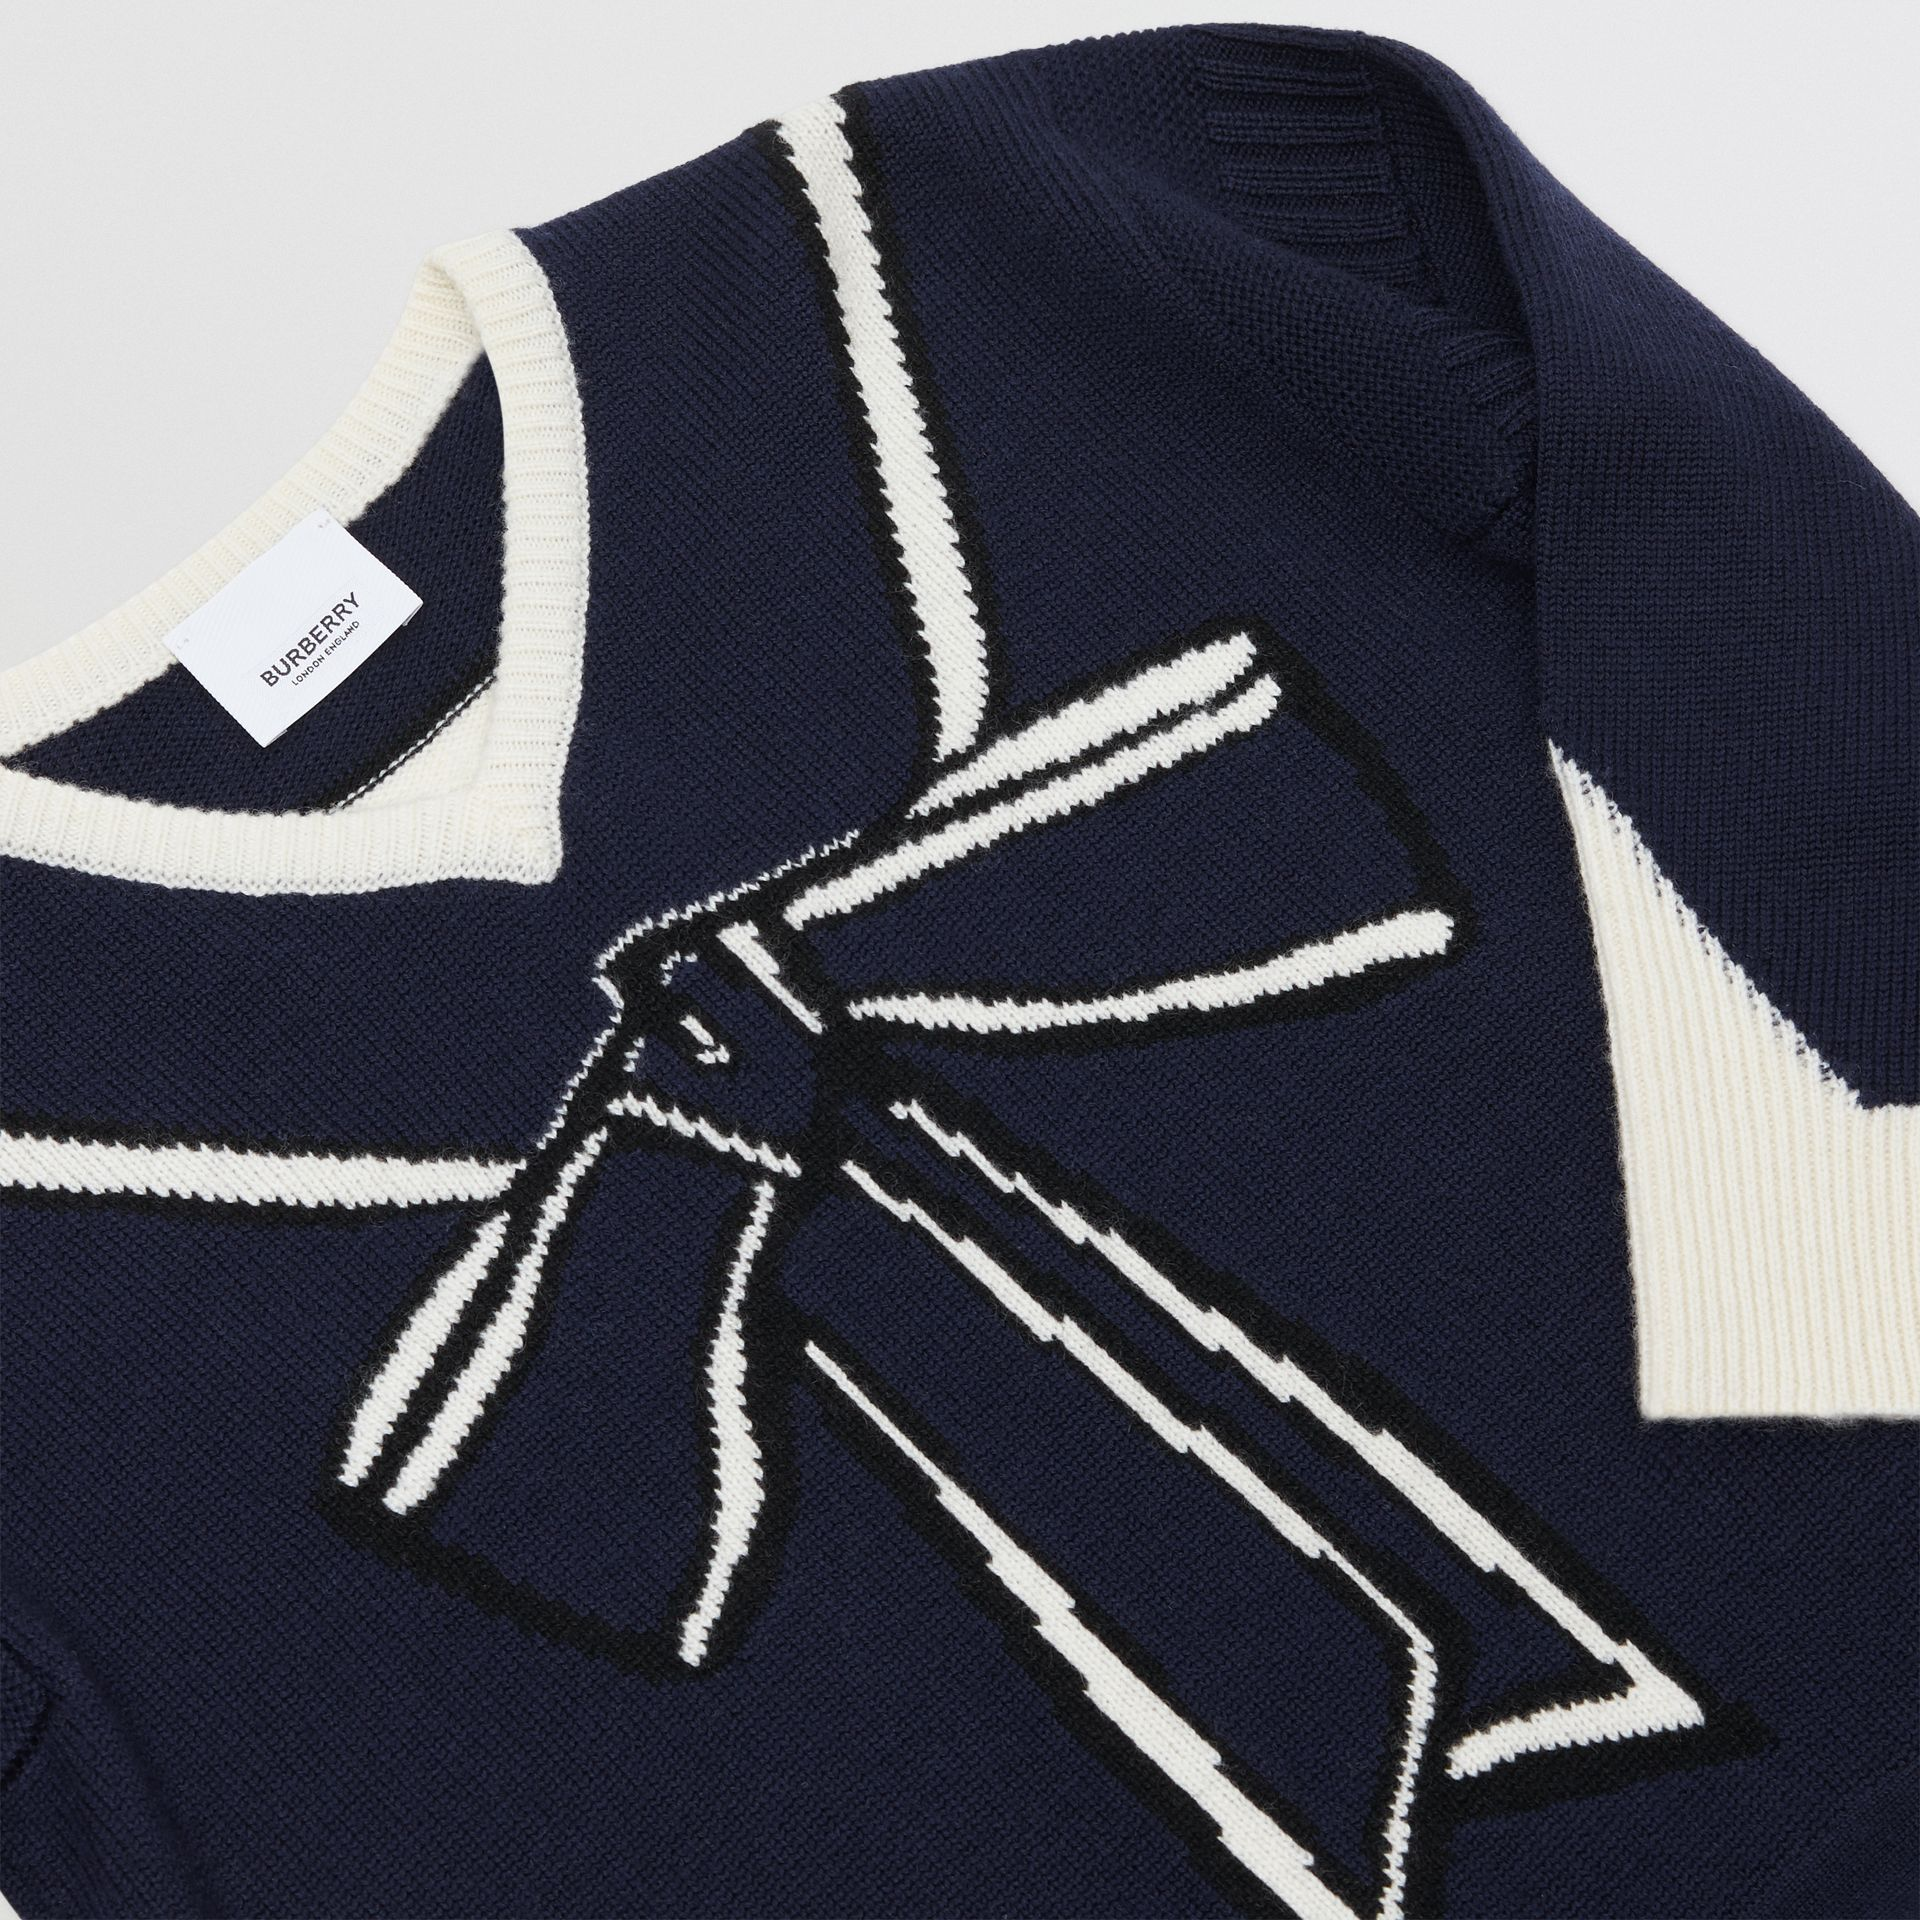 Trompe L'Oeil Intarsia Wool Cashmere Dress in Navy | Burberry Australia - gallery image 1